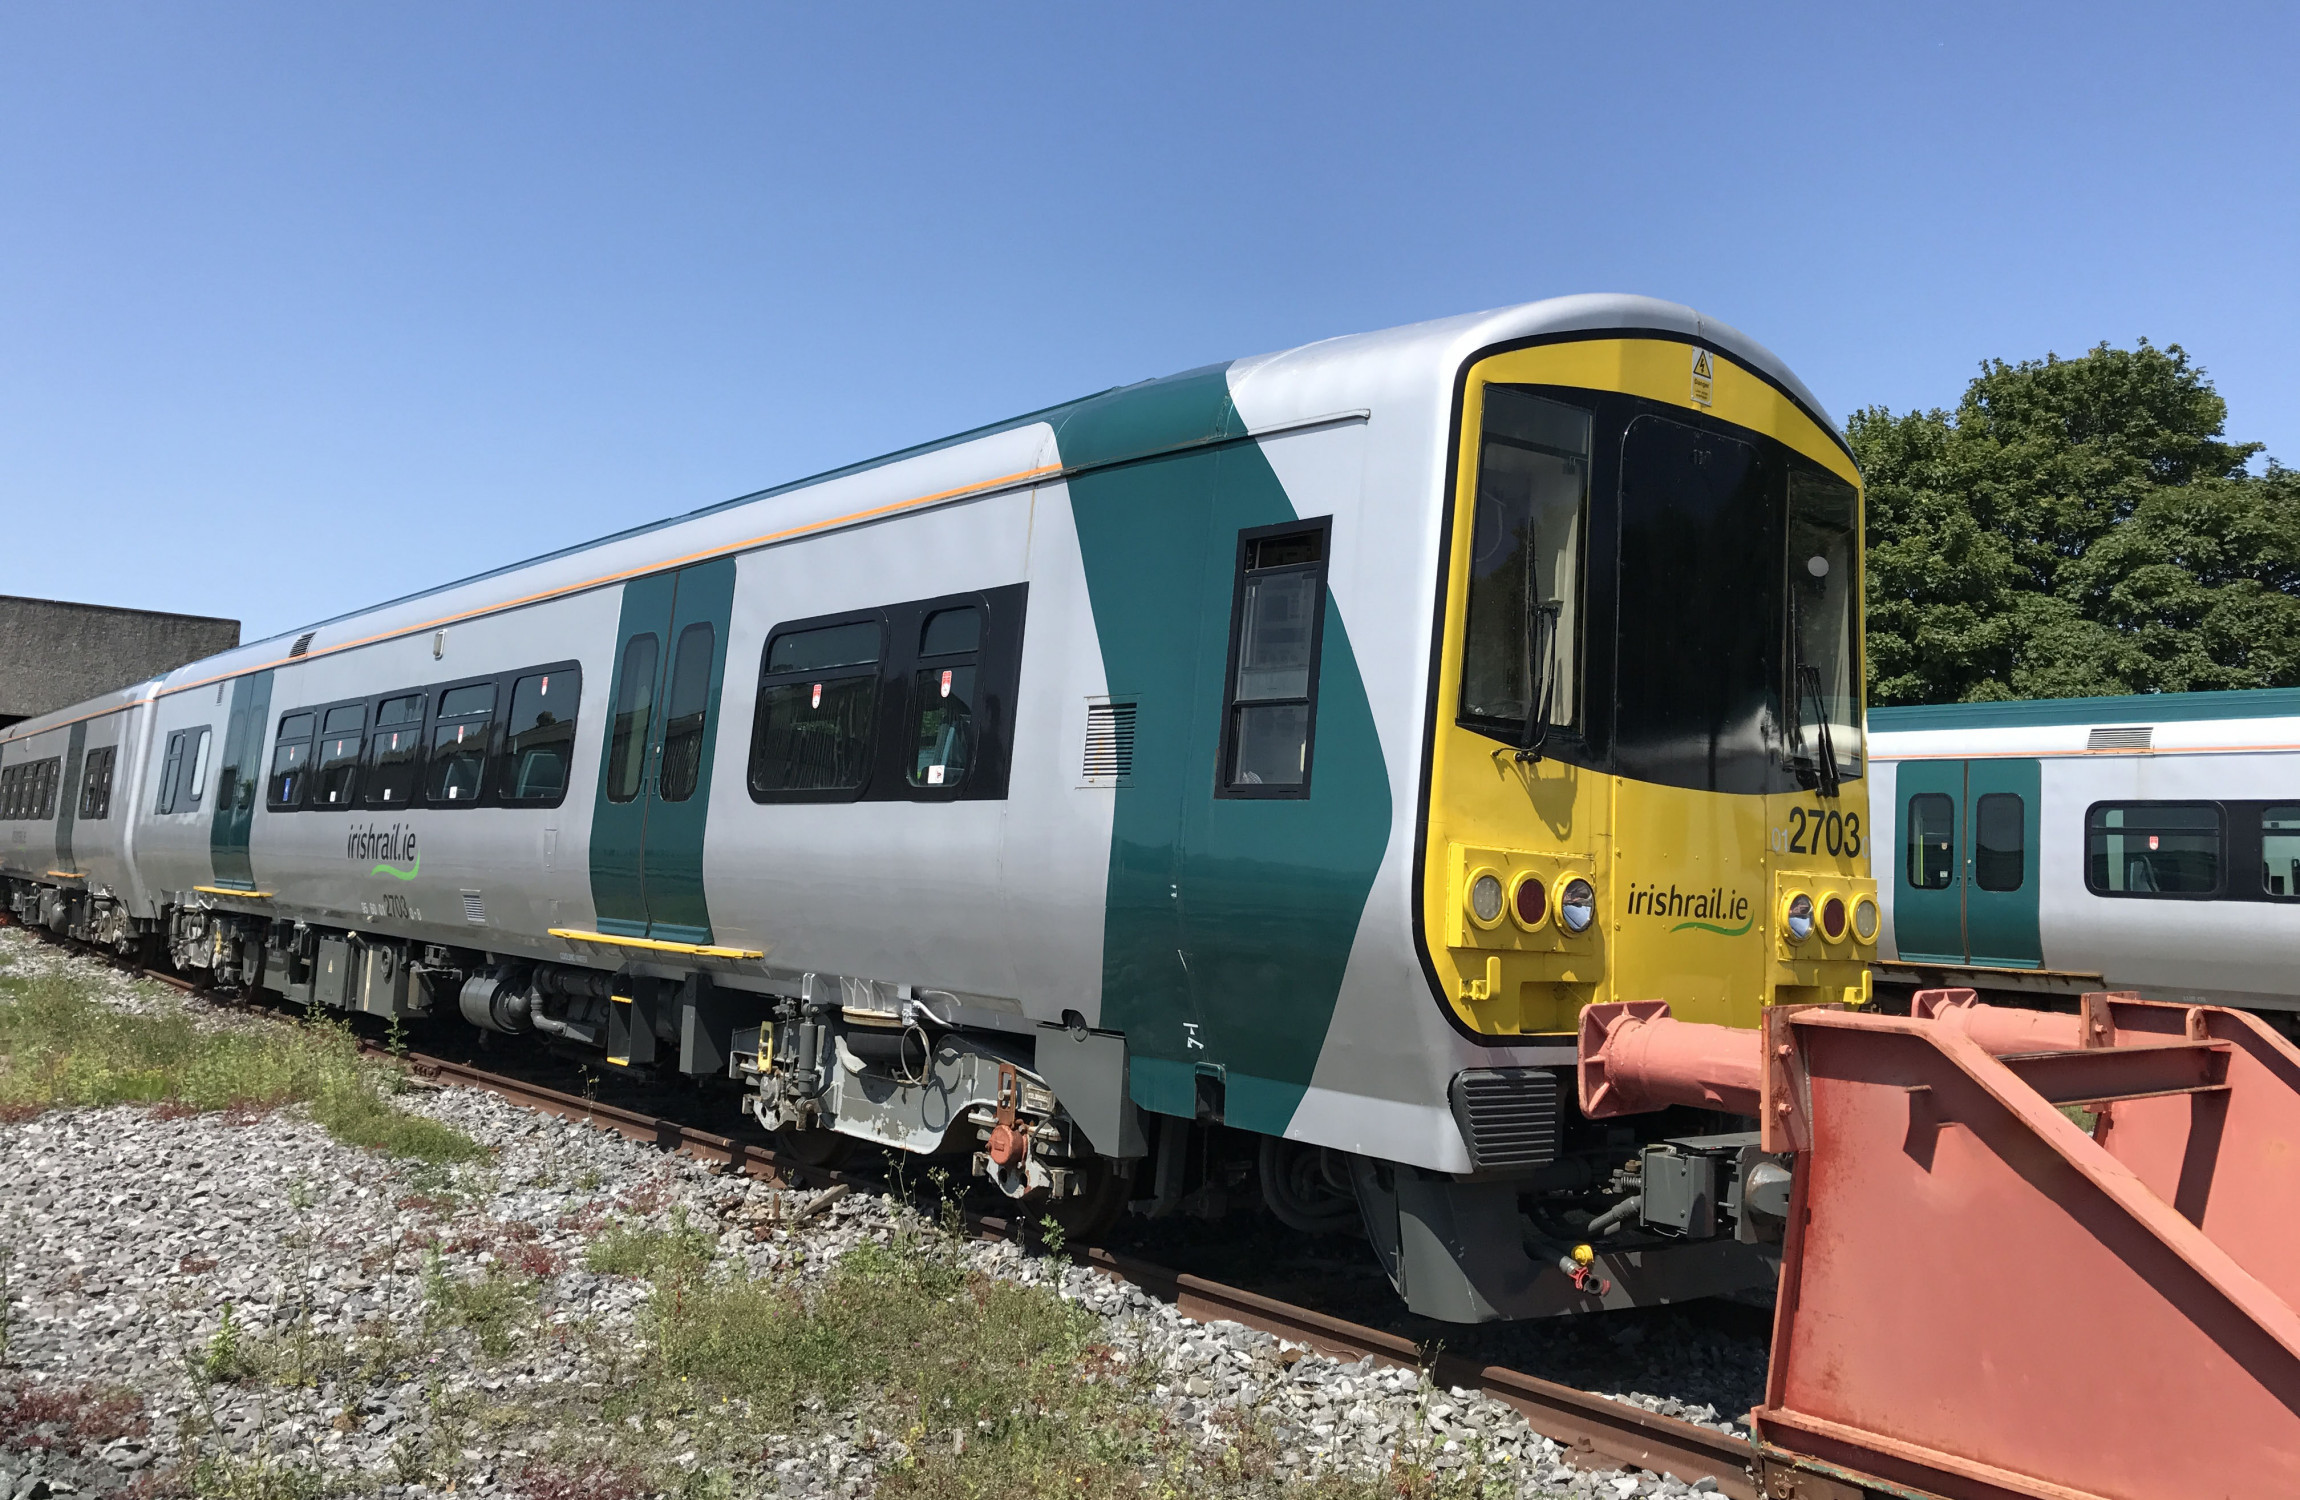 irish rail is fixing up 28 train carriages to get them back in service